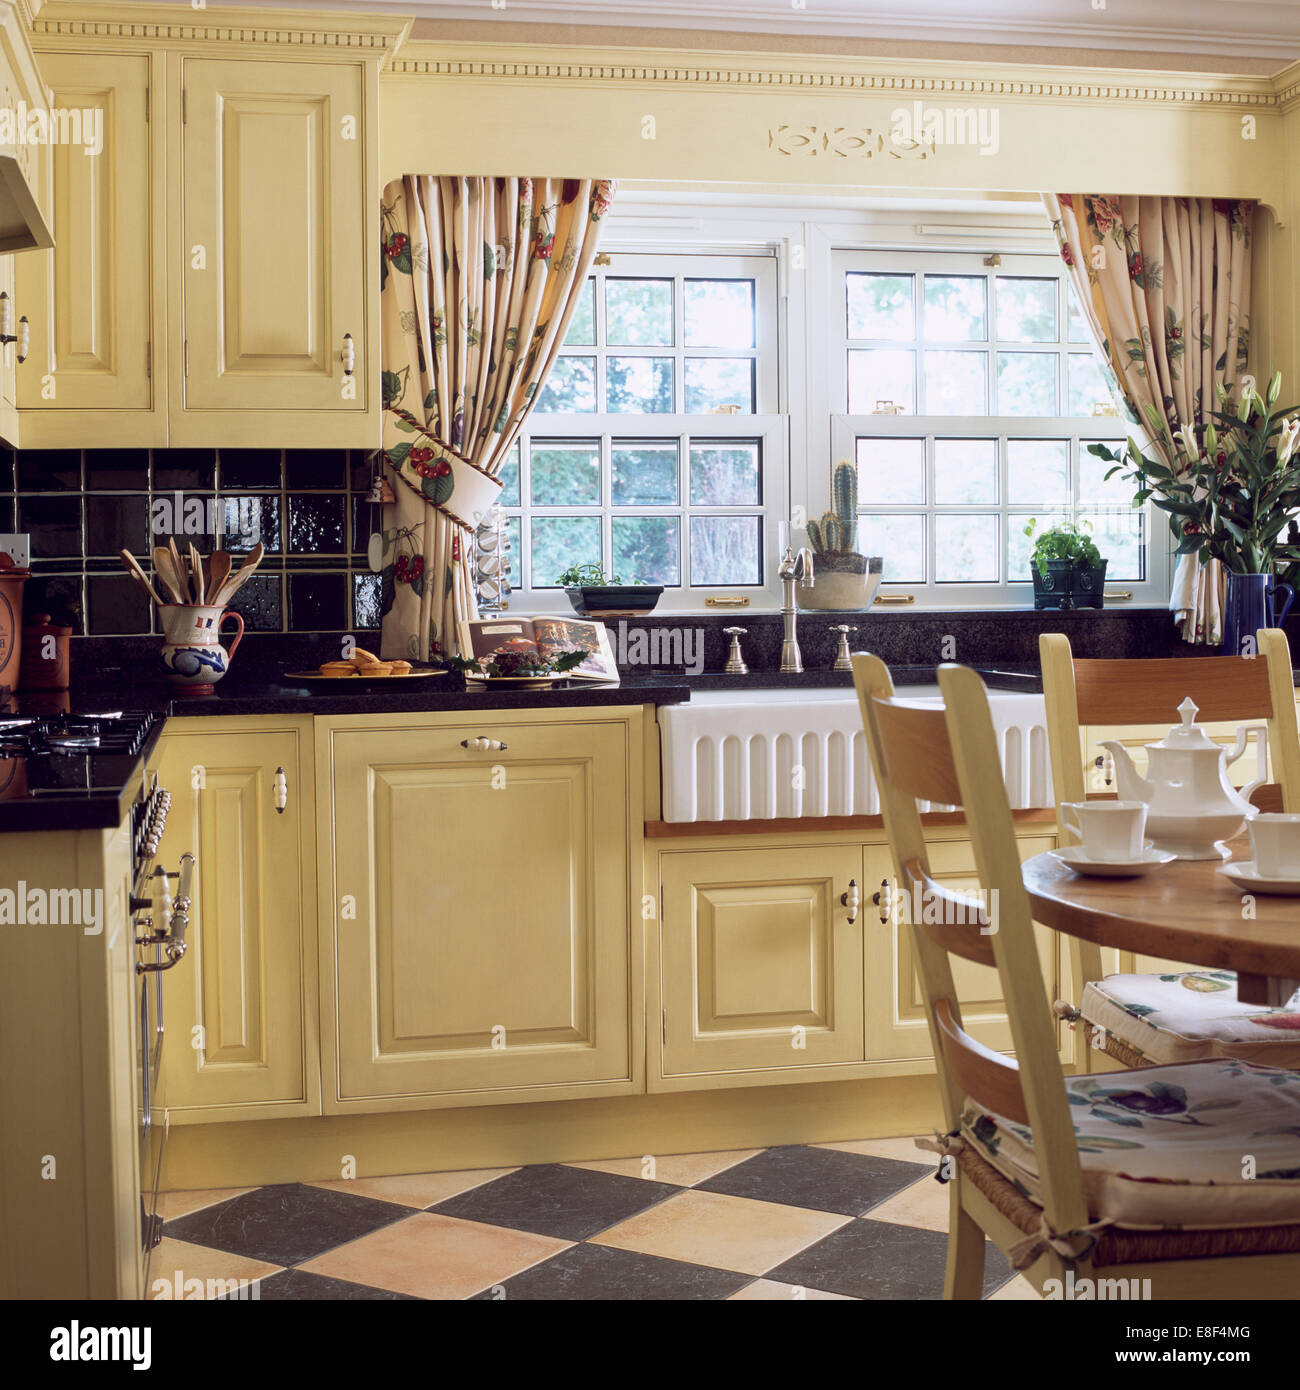 Patterned Curtains On Window Above Butler's Sink In Cream